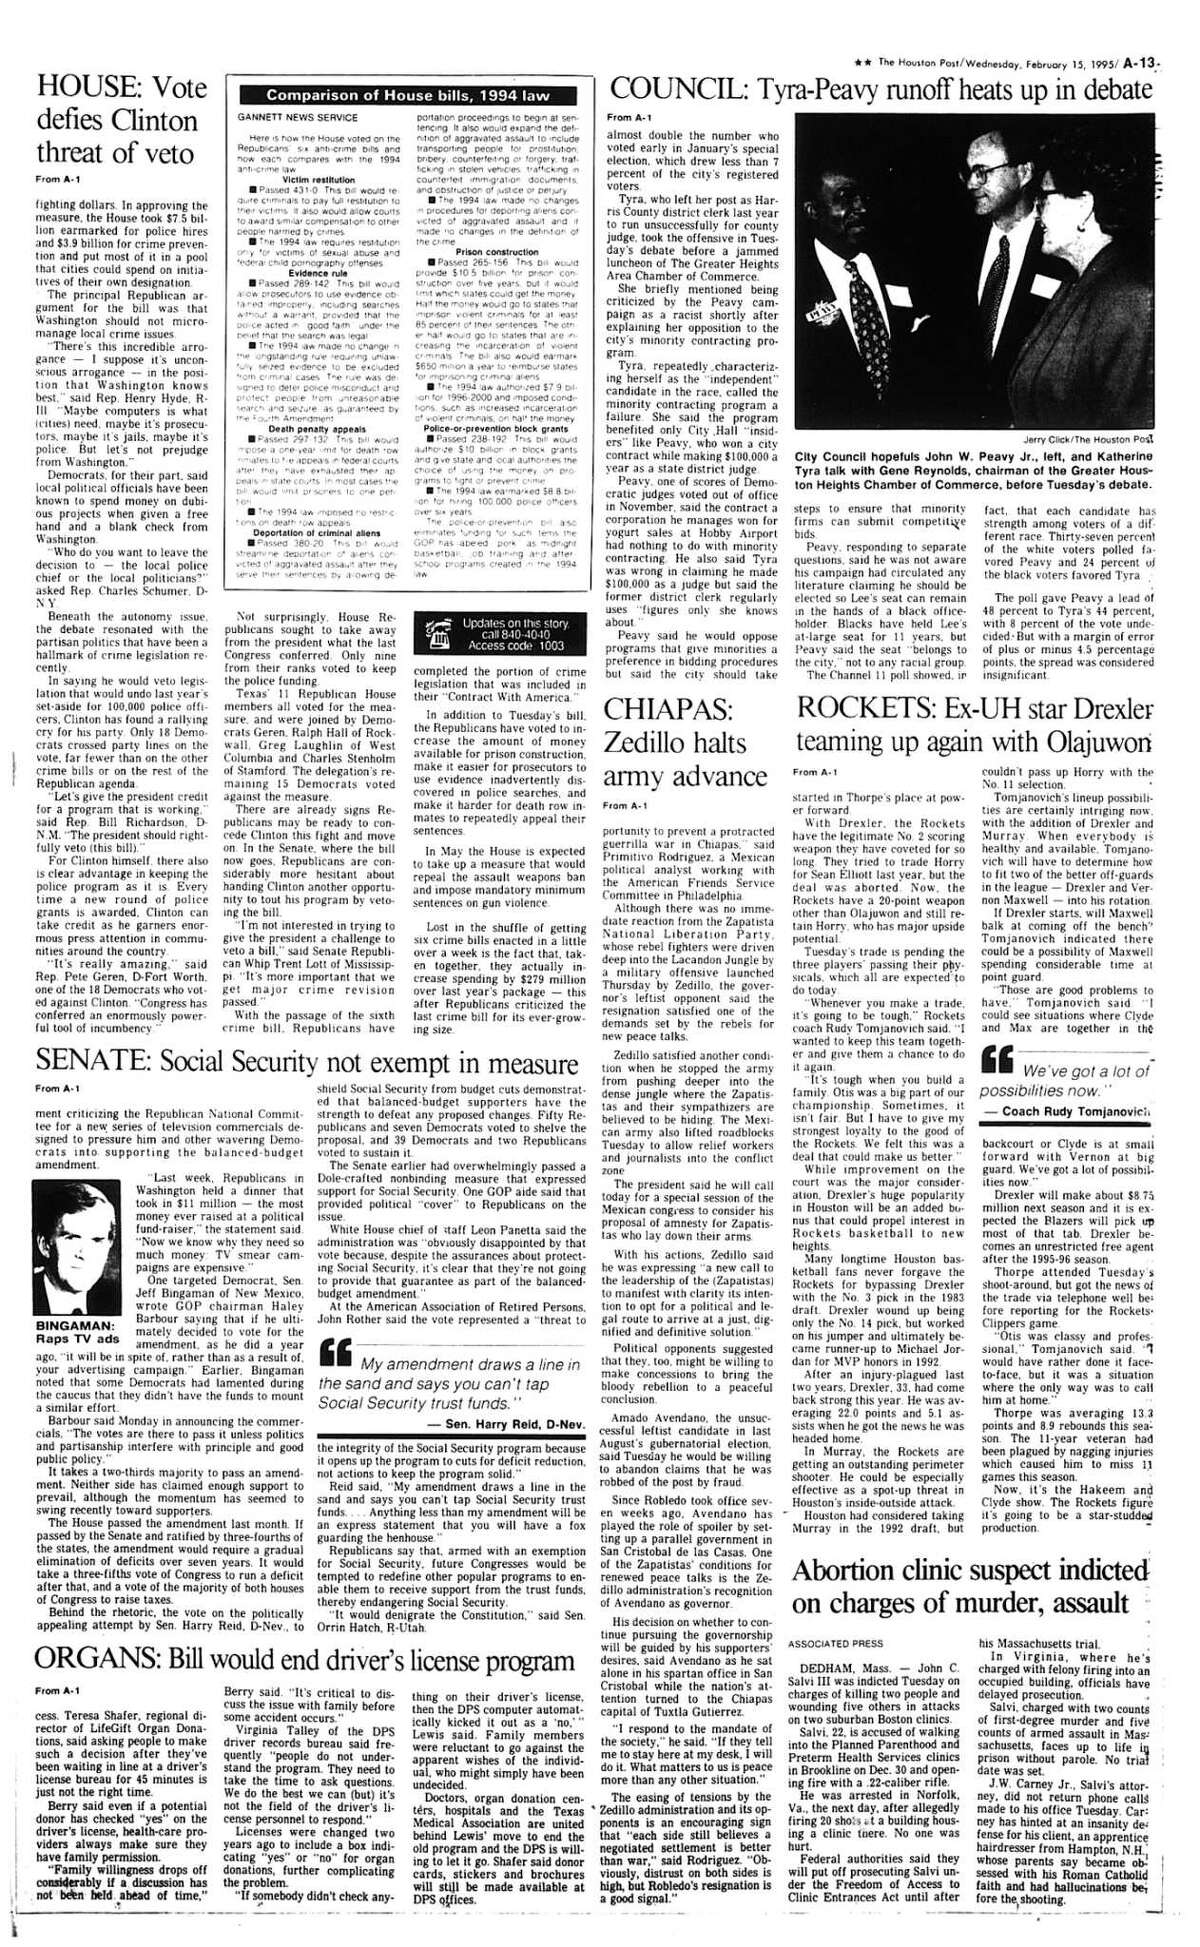 Houston Post inside page Â?- February 15, 1995 - section A, page 13. ROCKETS: Ex-UH star Drexler teaming up again with Olajuwon